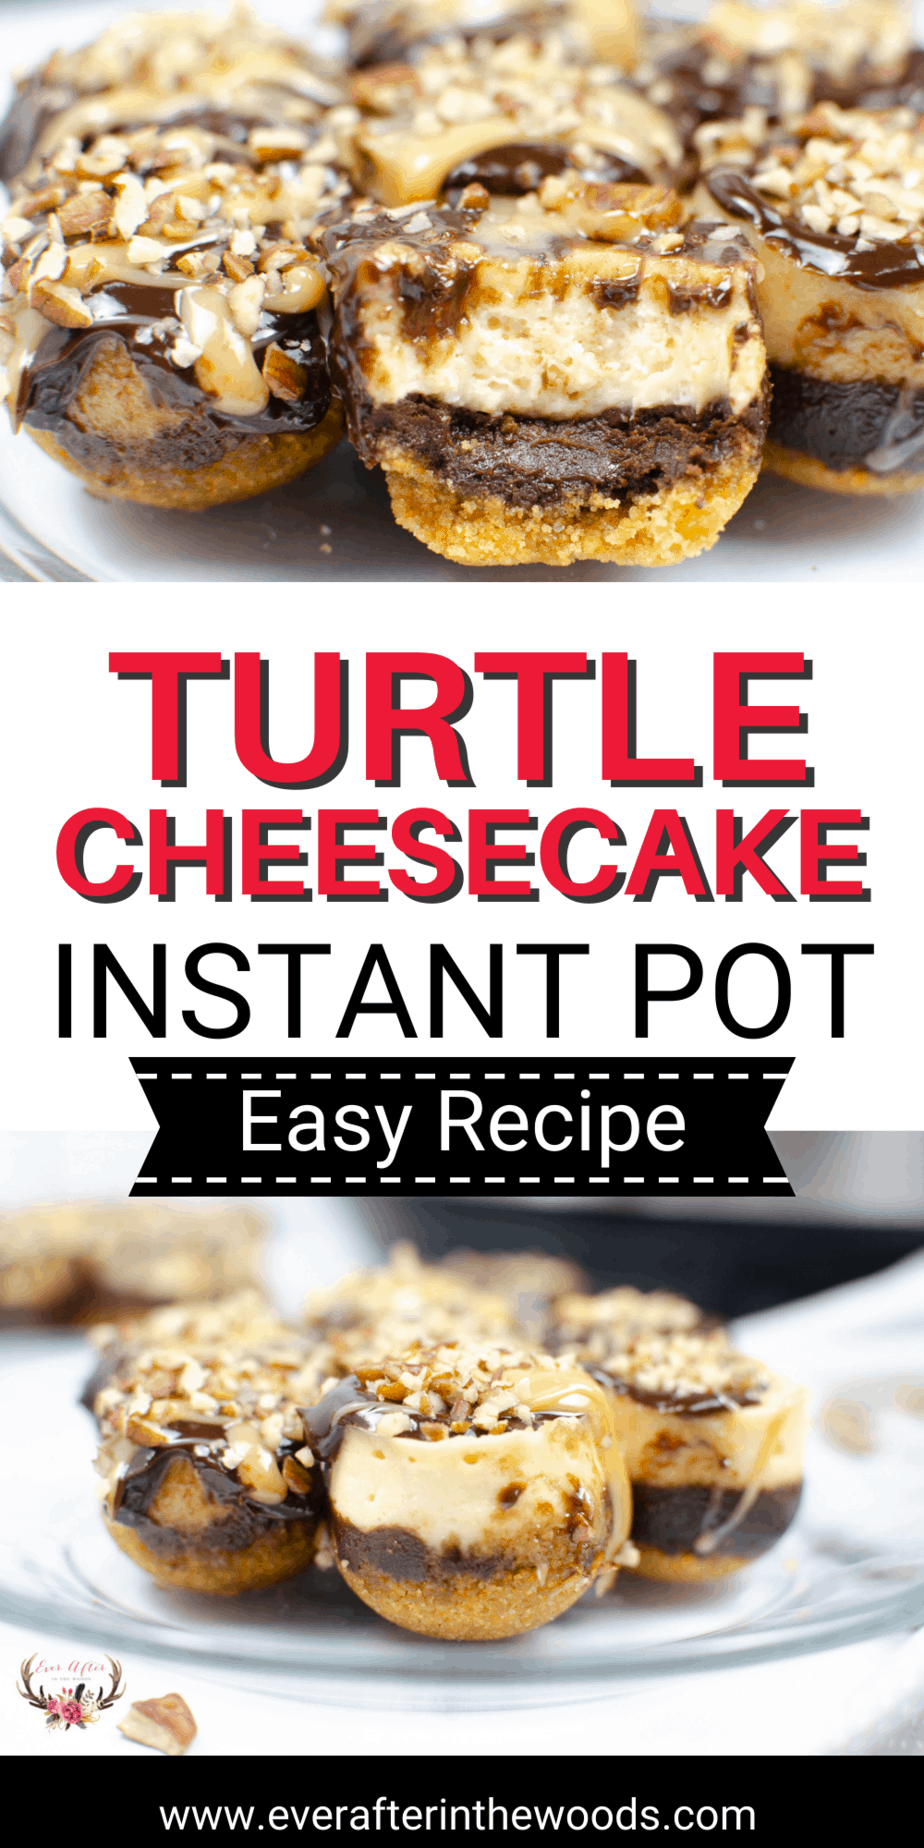 turtle cheesecake - instant pot